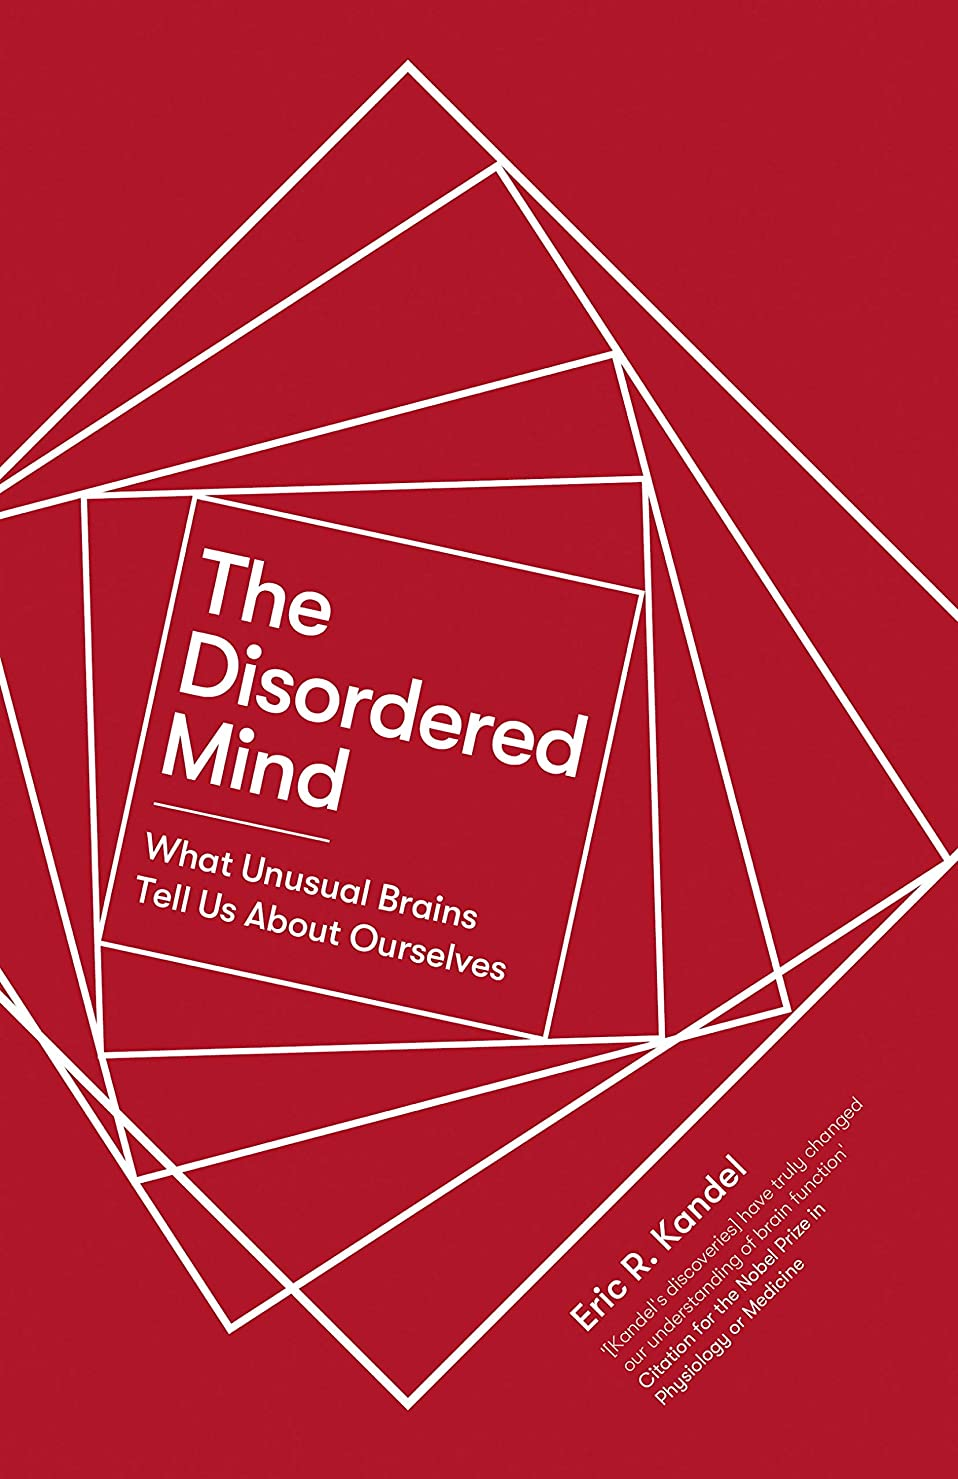 テスピアン吸収不良品The Disordered Mind: What Unusual Brains Tell Us About Ourselves (English Edition)